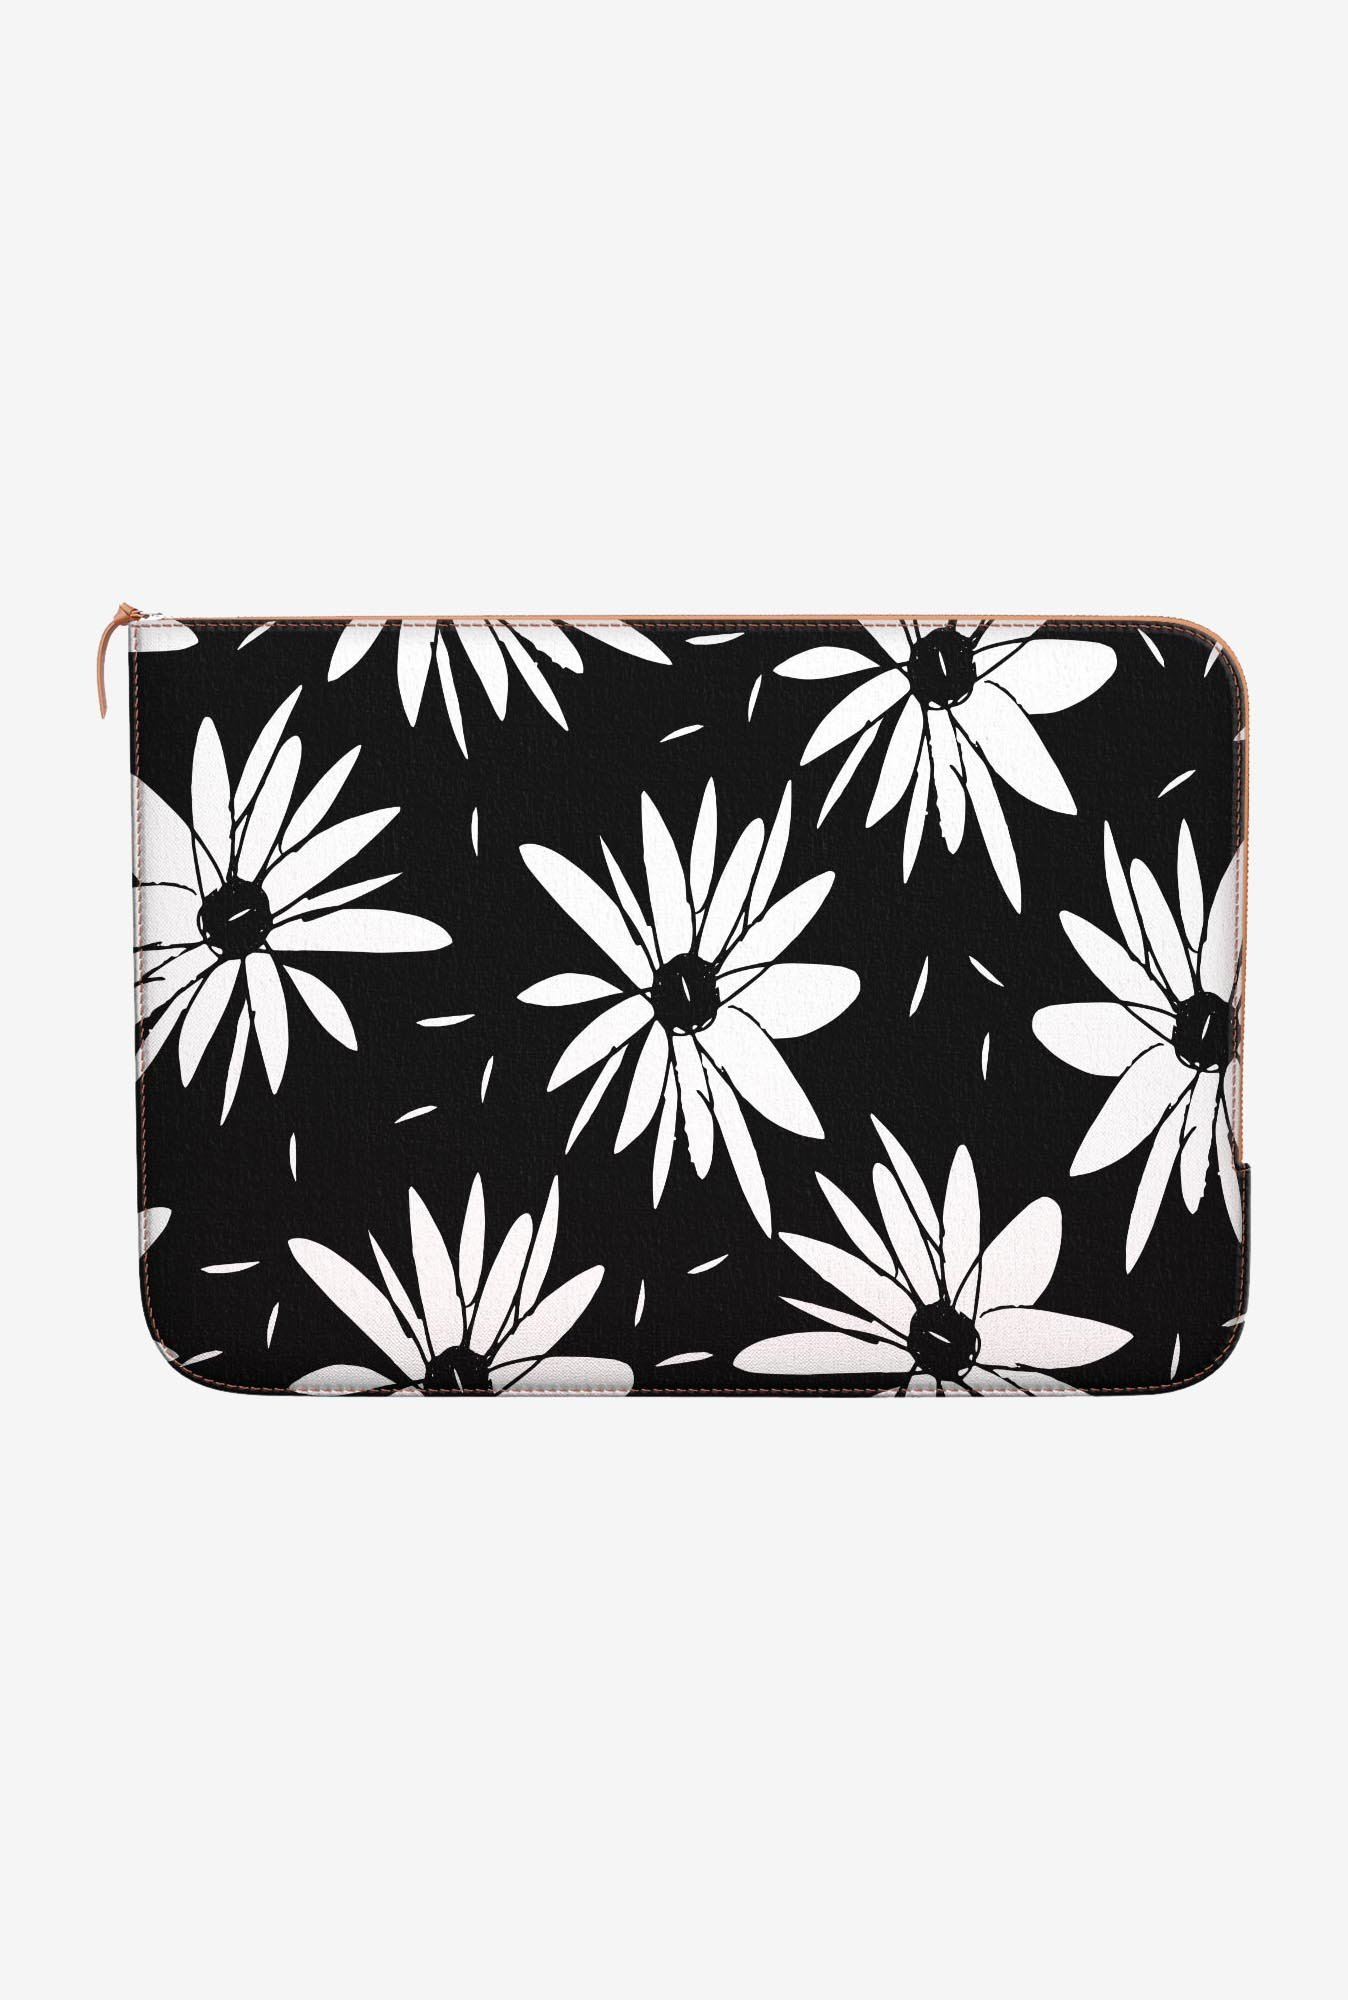 DailyObjects Floral & Daisy MacBook Pro 13 Zippered Sleeve